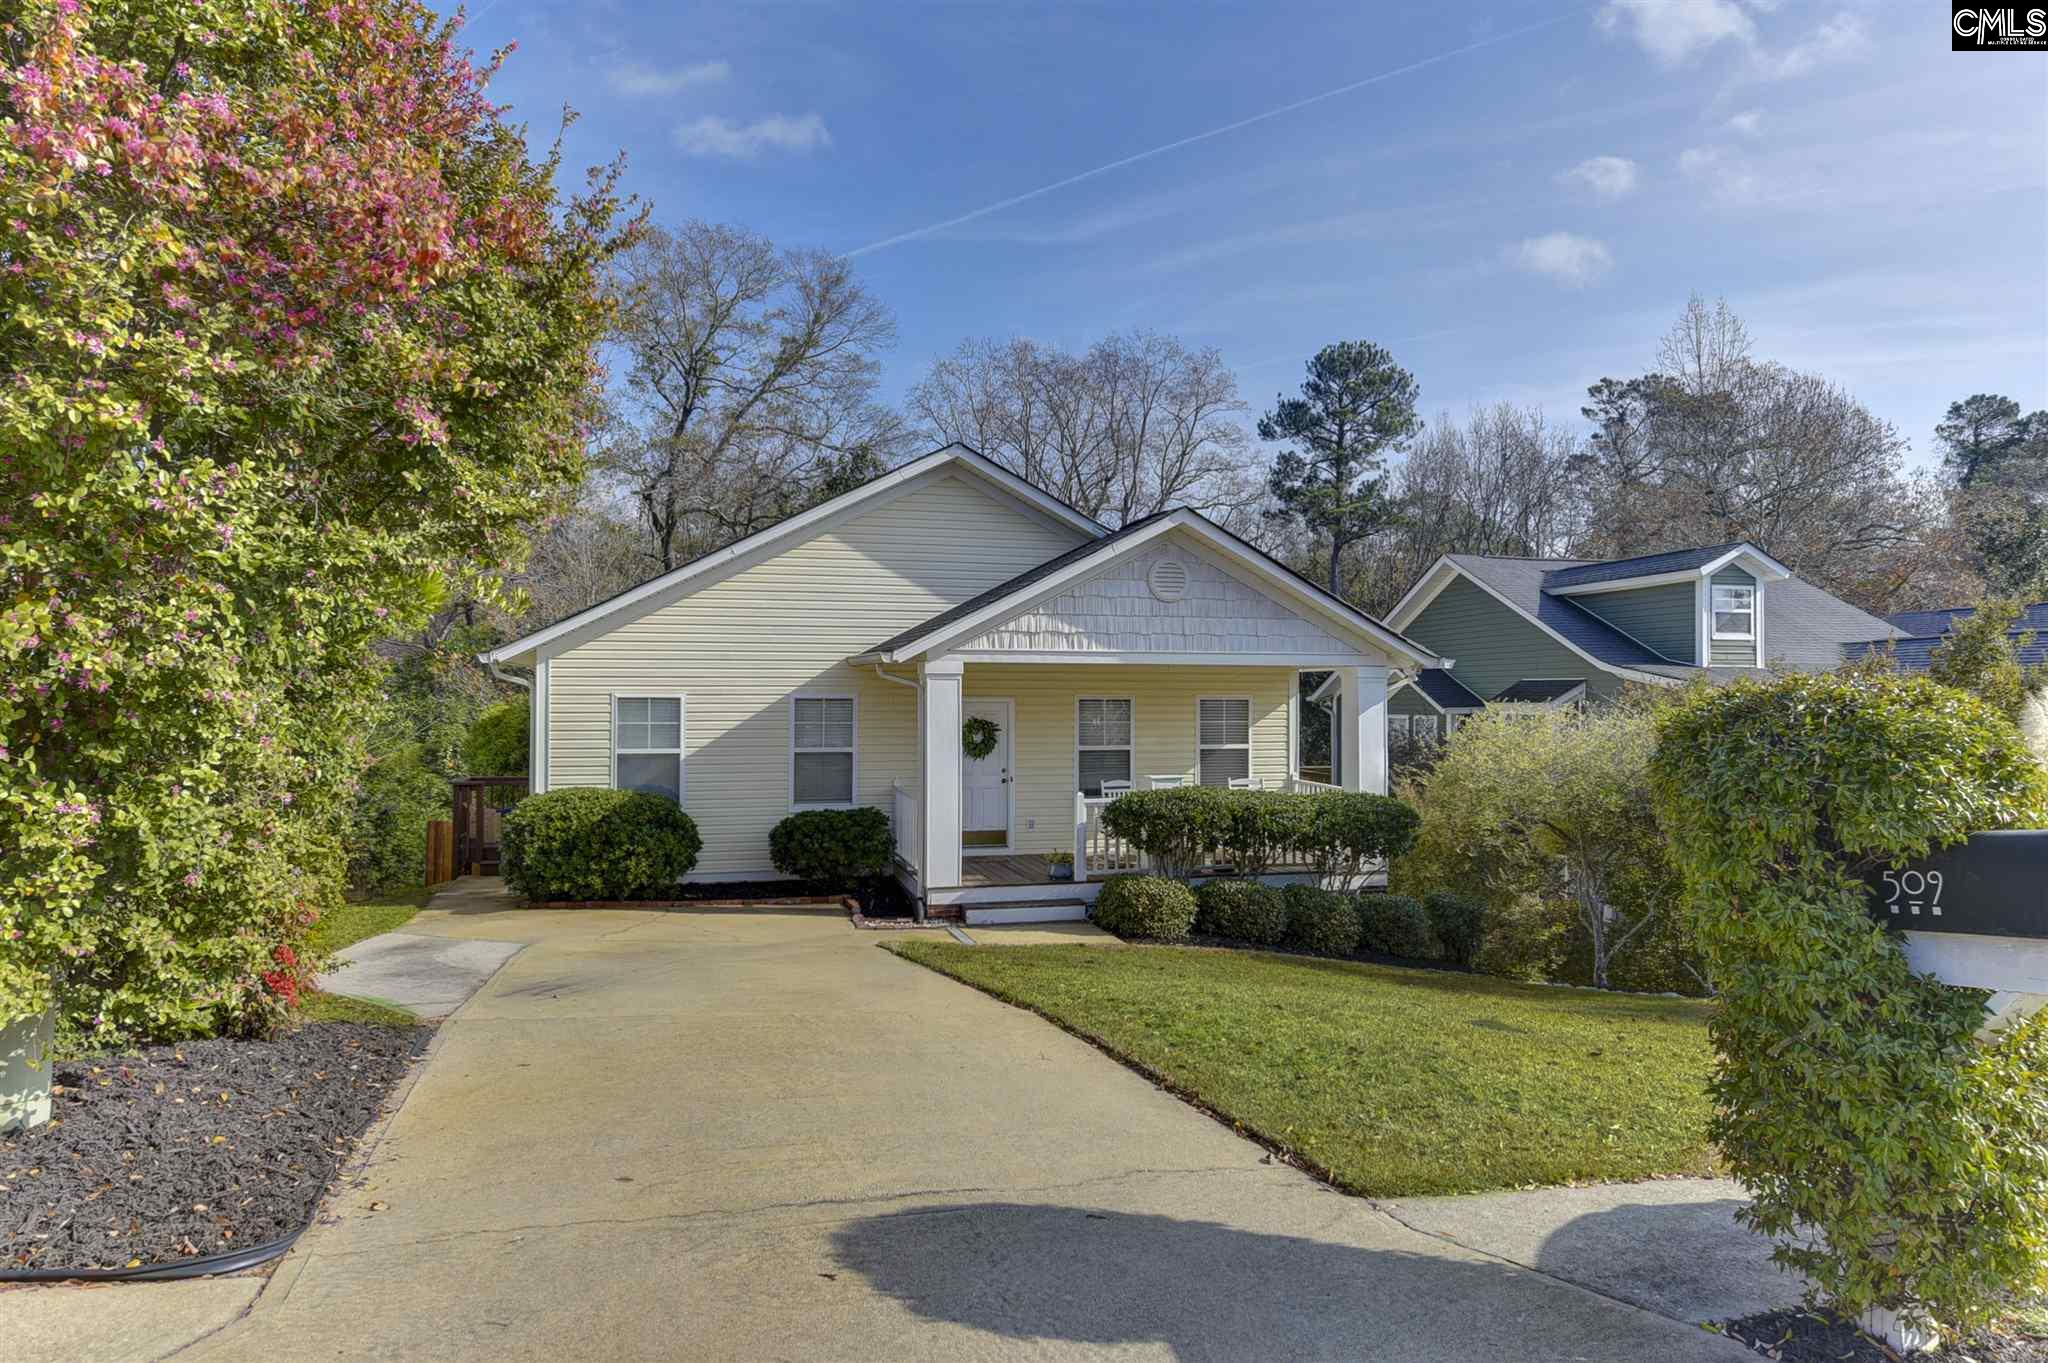 509 Laurel Hill Columbia, SC 29201